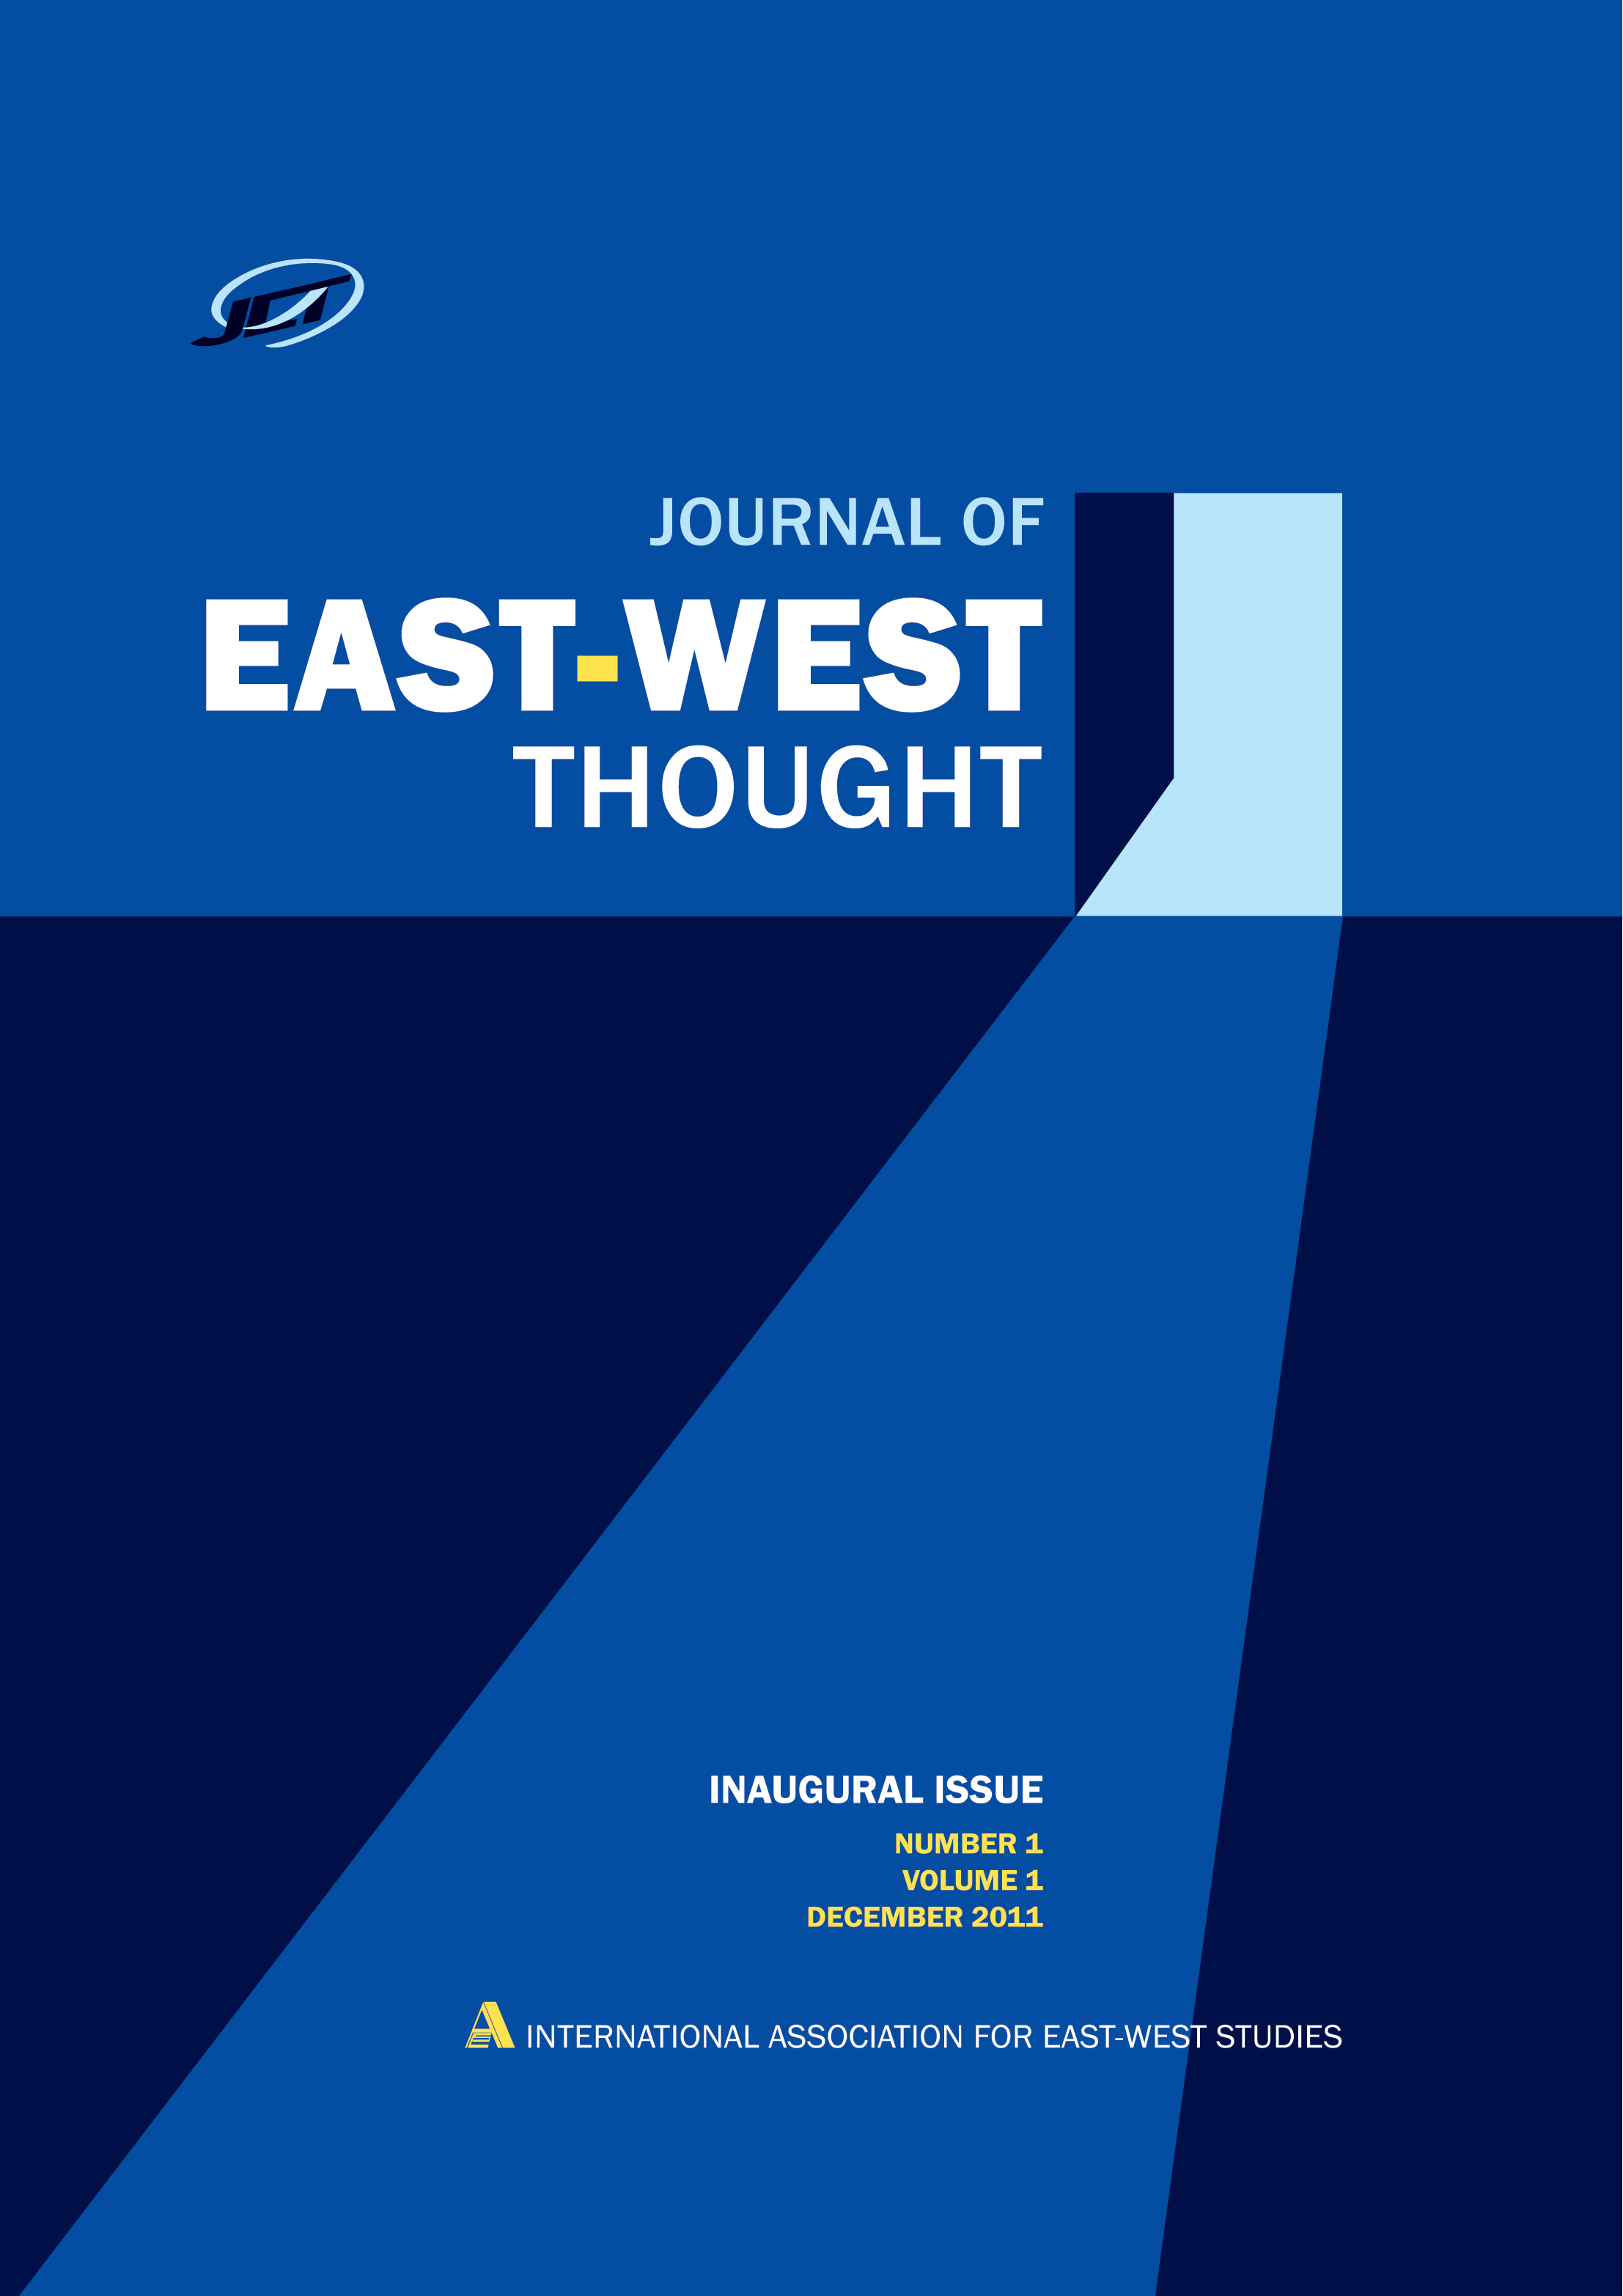 Cover image of the Journal of East-West Thought